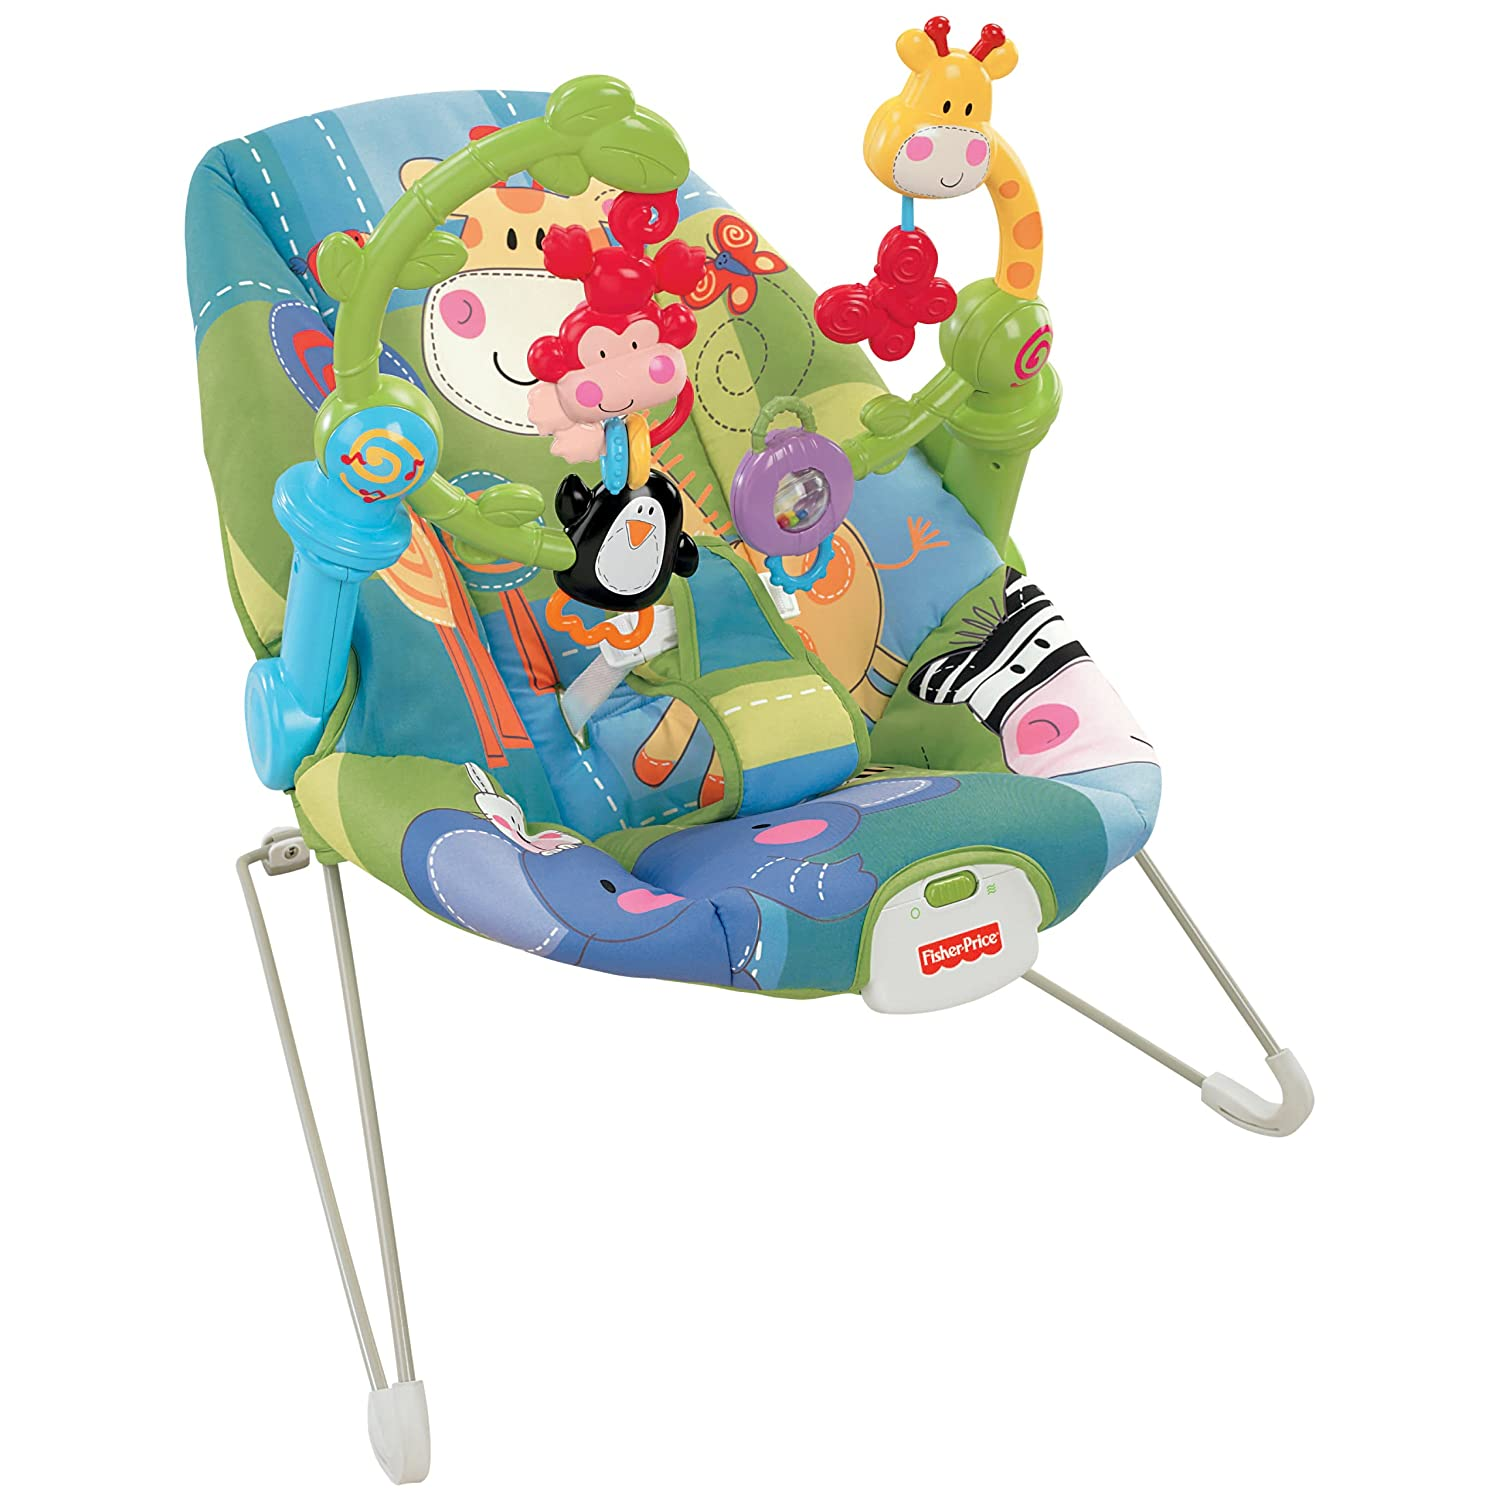 Details about Fisher Price Discover and n Grow Jungle Bouncer Activity  #AE1D2A 1500x1500